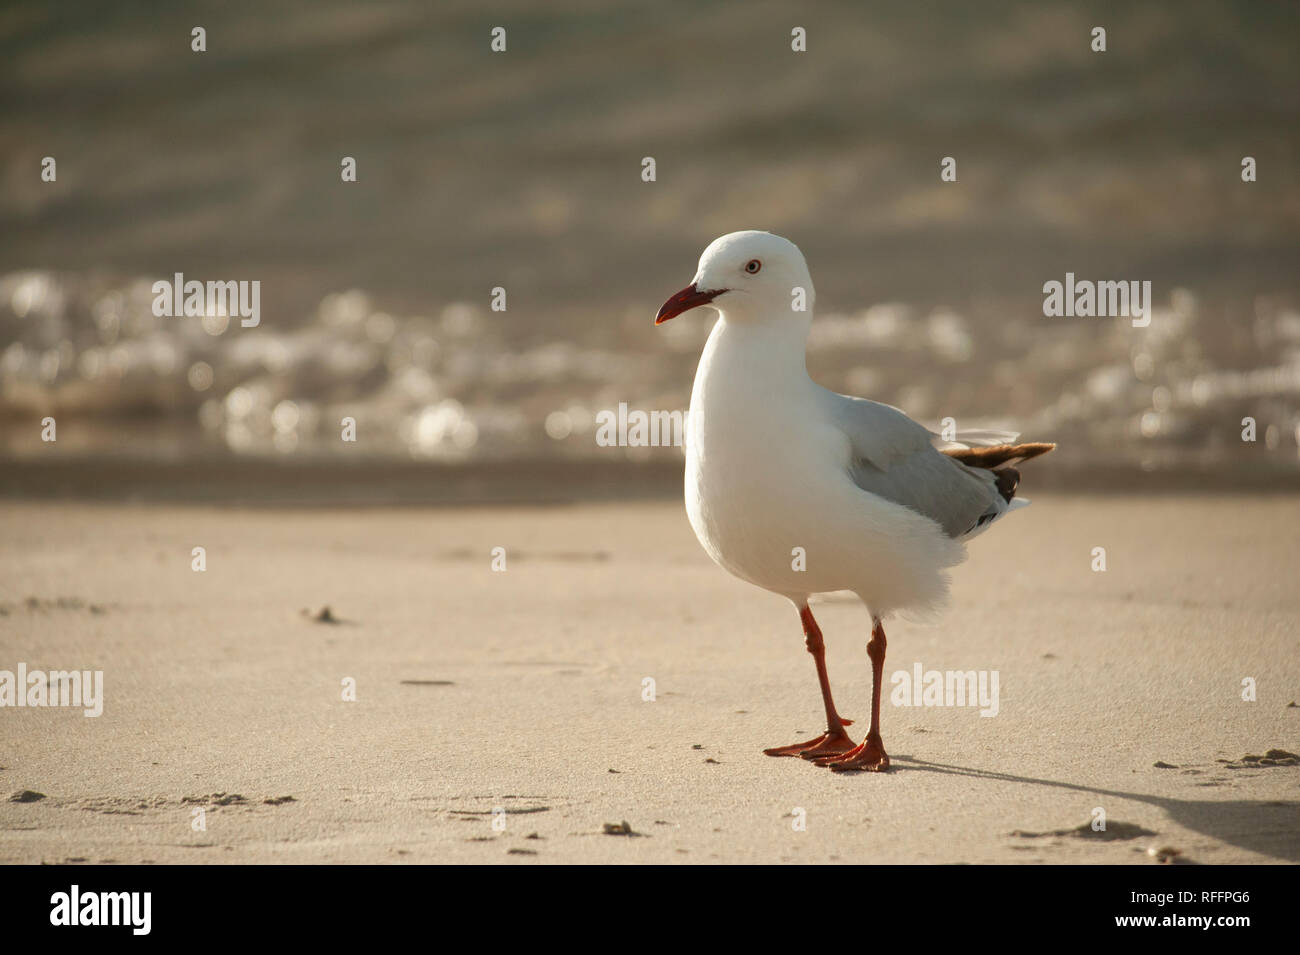 Seagull on a beach, Recherche Bay, Tasmania, Australia Stock Photo